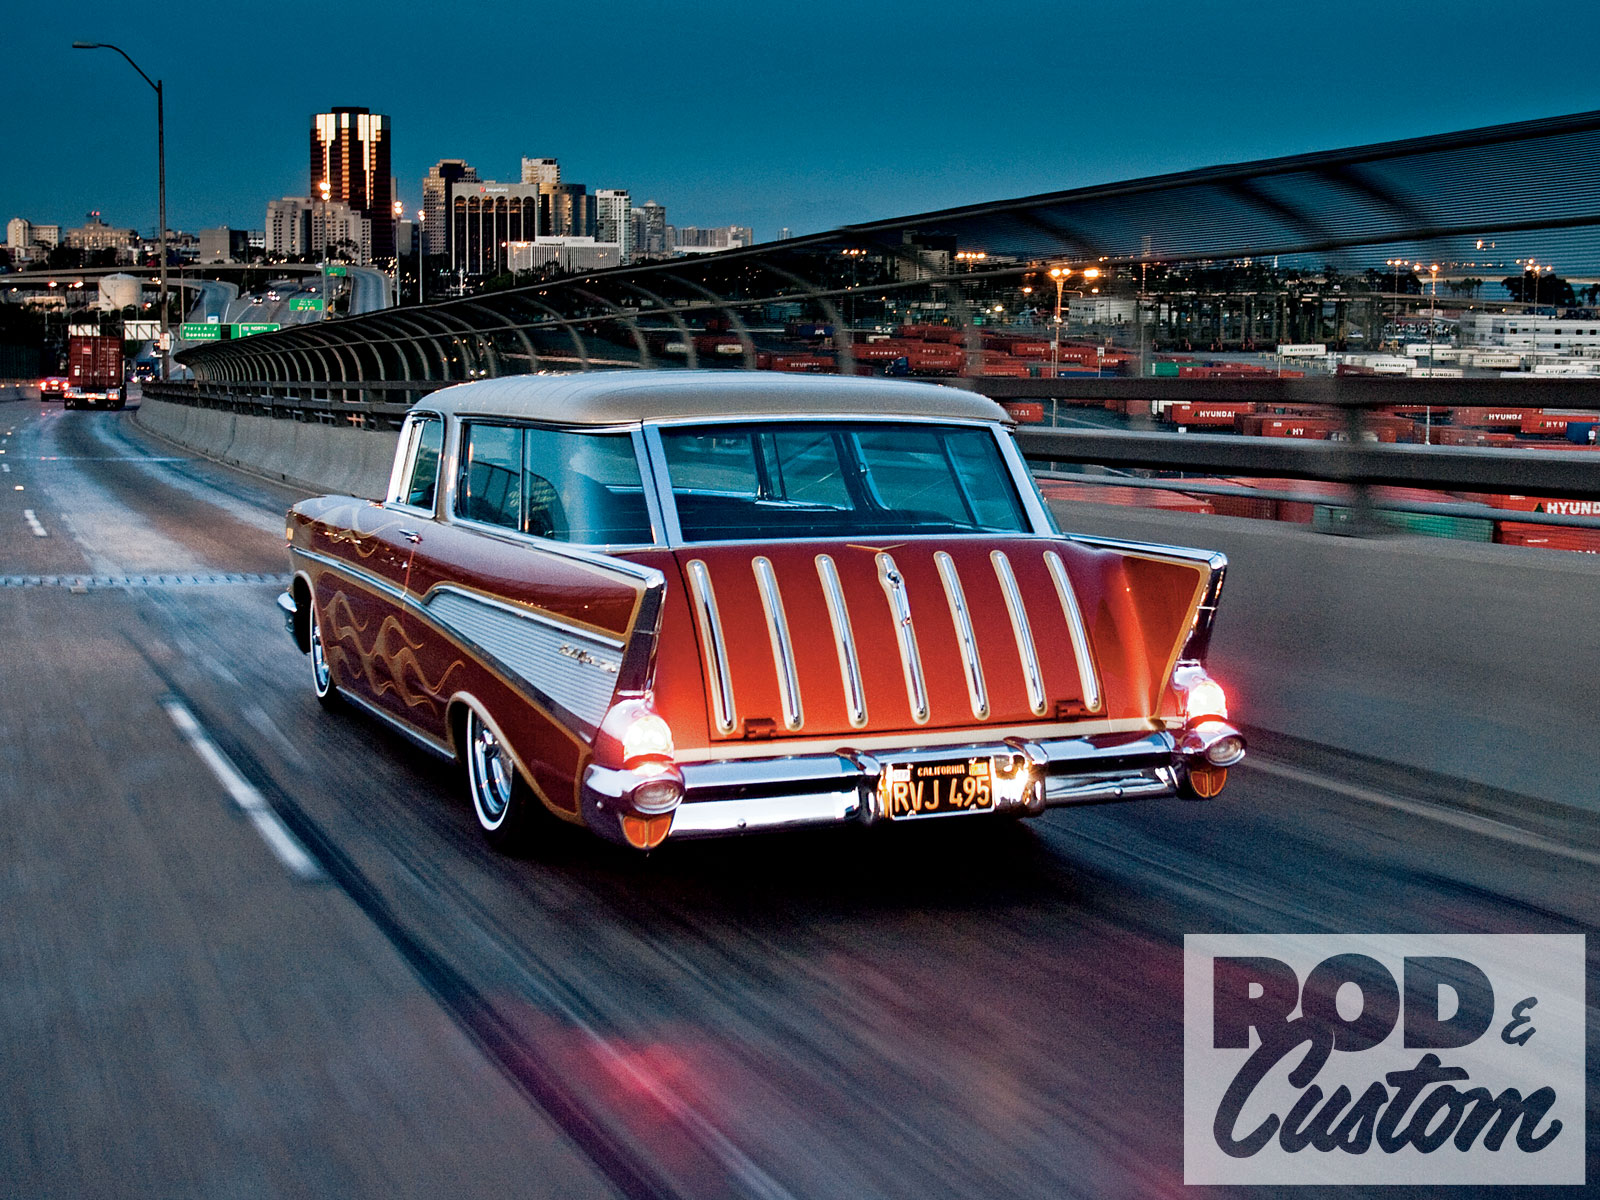 1600x1200 - Chevrolet Nomad Wallpapers 5